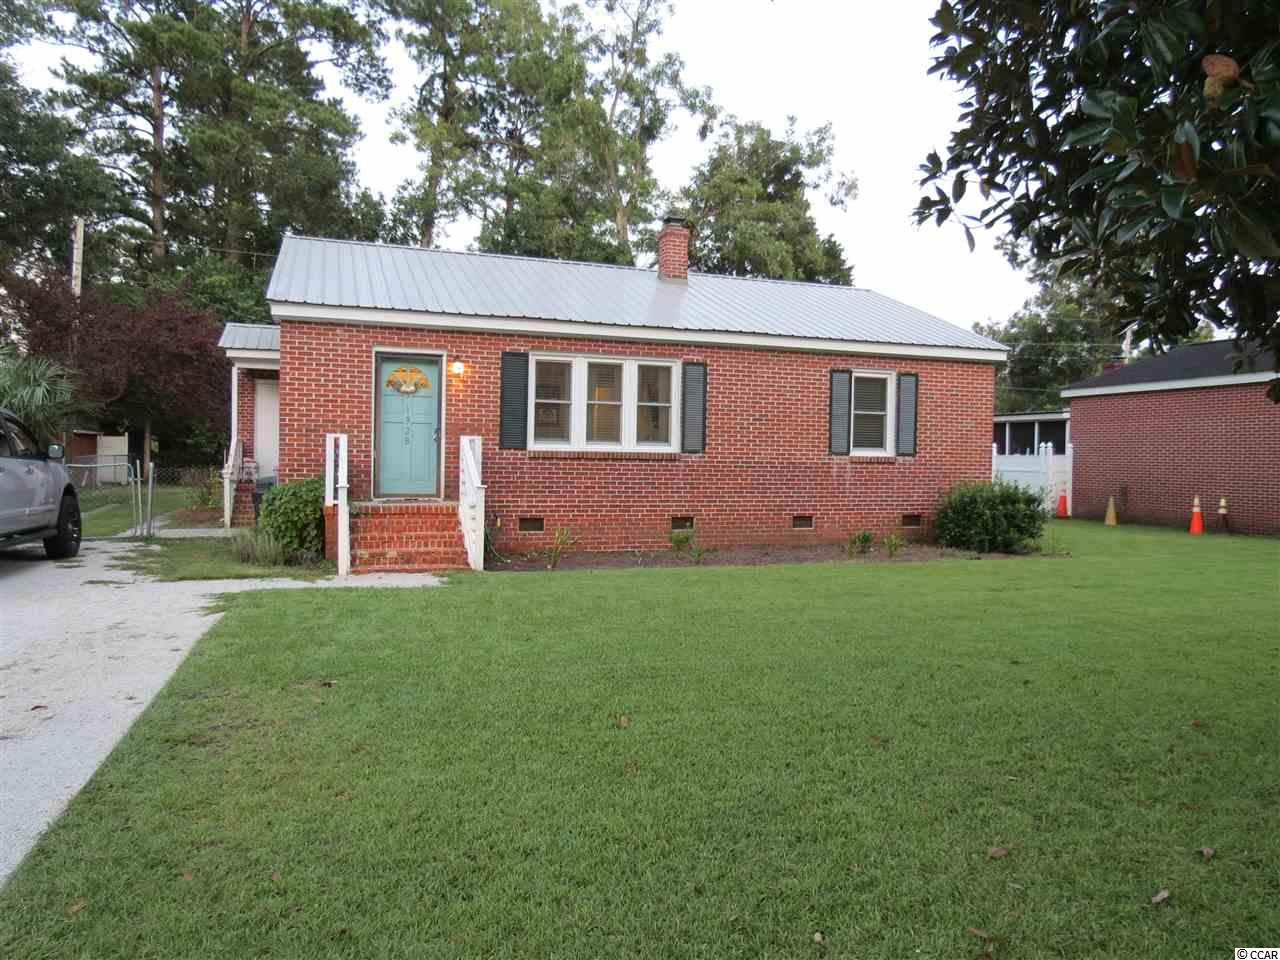 """This one I call """"Cute as a Button"""" and is in move in ready condition. Kensington Estates is a very desirable neighborhood with a top rank Elementary school and conveniently located close to town. This adorable all brick veneer home was completely remolded in 2018 and offers many of your upgrades including  a tankless hot water heater, all vinyl windows and a tin roof that was installed in Nov. 2019. Completely remolded kitchen with white soft close cabinets, subway tile backsplash, wall mounted chimney-style stove vent, Stainless Steel Frigidaire smooth top range, dishwasher and refrigerator and tile flooring. Remolded full bath with porcelain tile flooring, double vanity sinks and an added storage cabinet. Other features include new light fixtures in 2018, oak hardwood flooring through out the living space and bedrooms, crown molding, recess lighting, arch foyer entrance, attic storage, outside storage space and fenced back yard."""